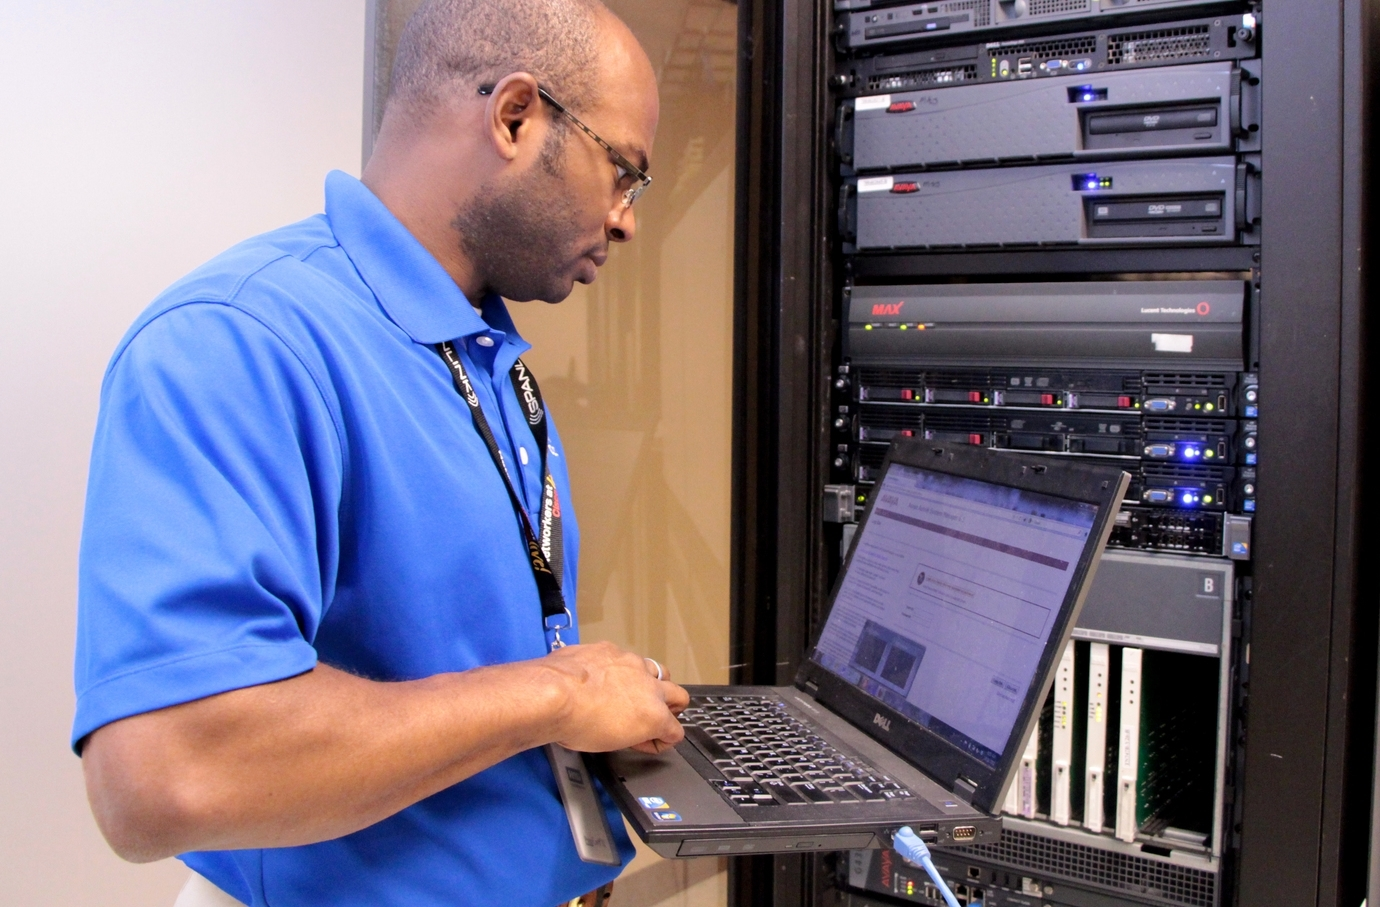 Brian Hall, an expert technician at Continuant, configures an Avaya phone system